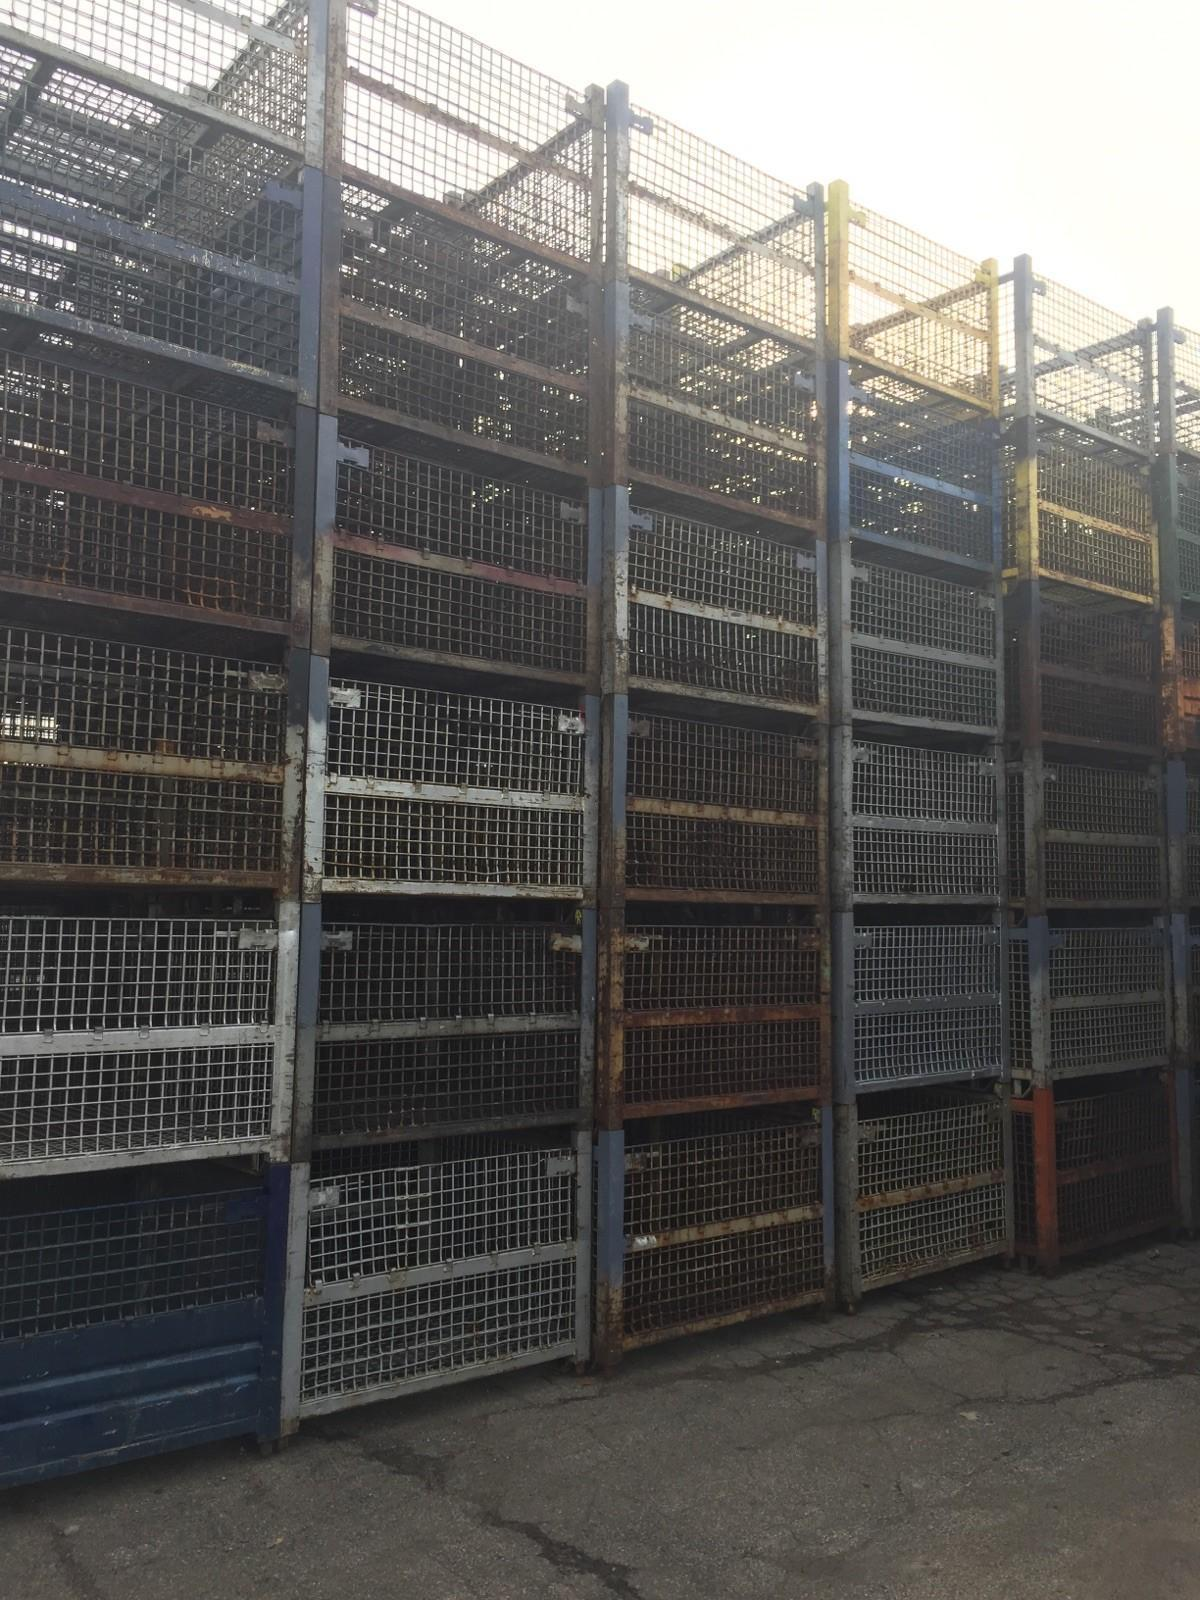 "53"" x 48"" x 38"" WIRE BASKETS / BIN / HOPPER"